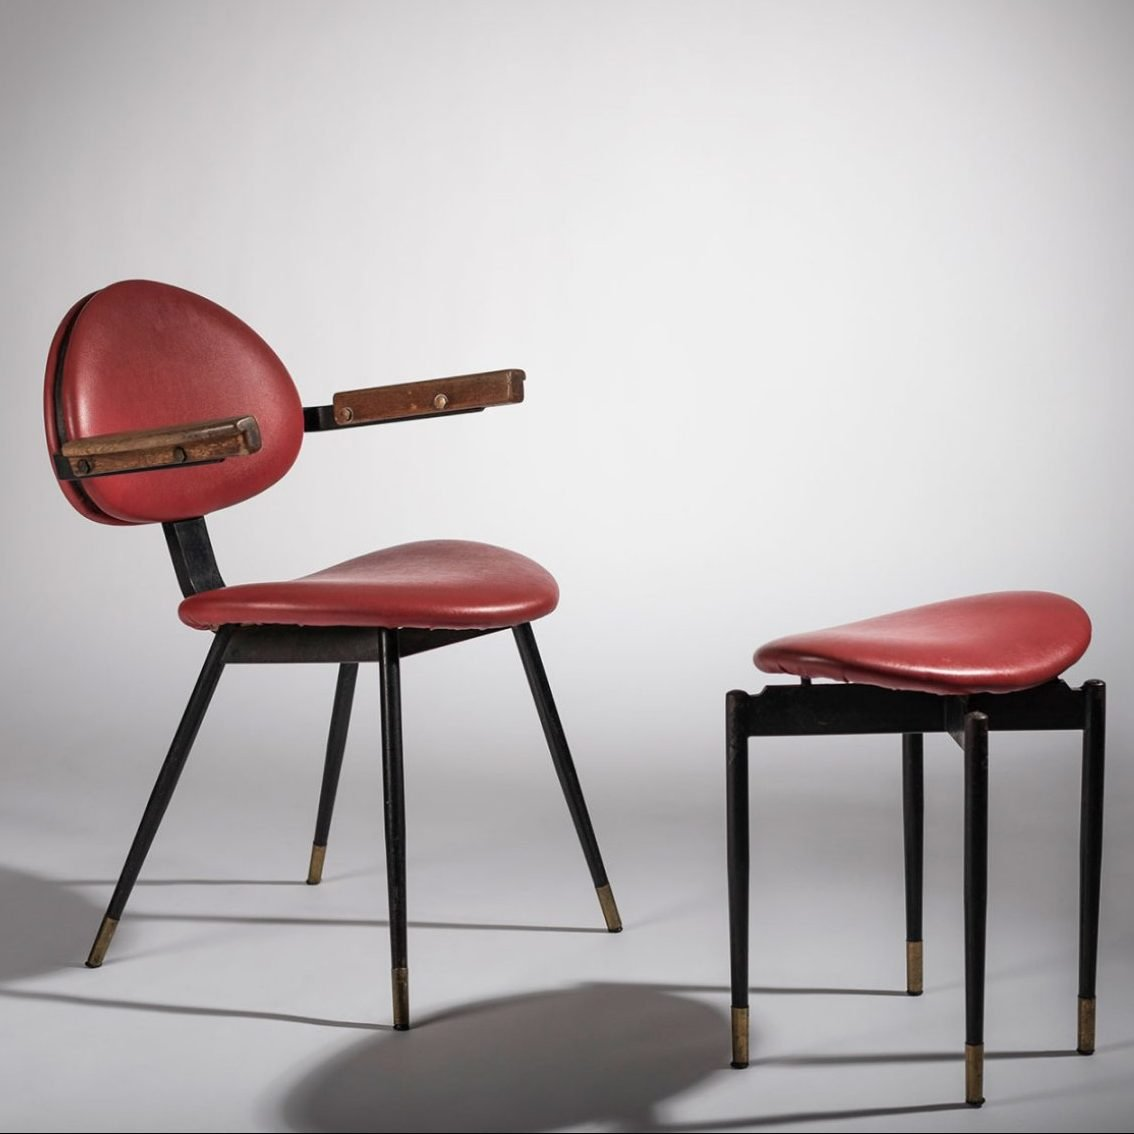 Italian designer Carlo Mollino chair and ottoman frontal view at Italian design and art Casati gallery